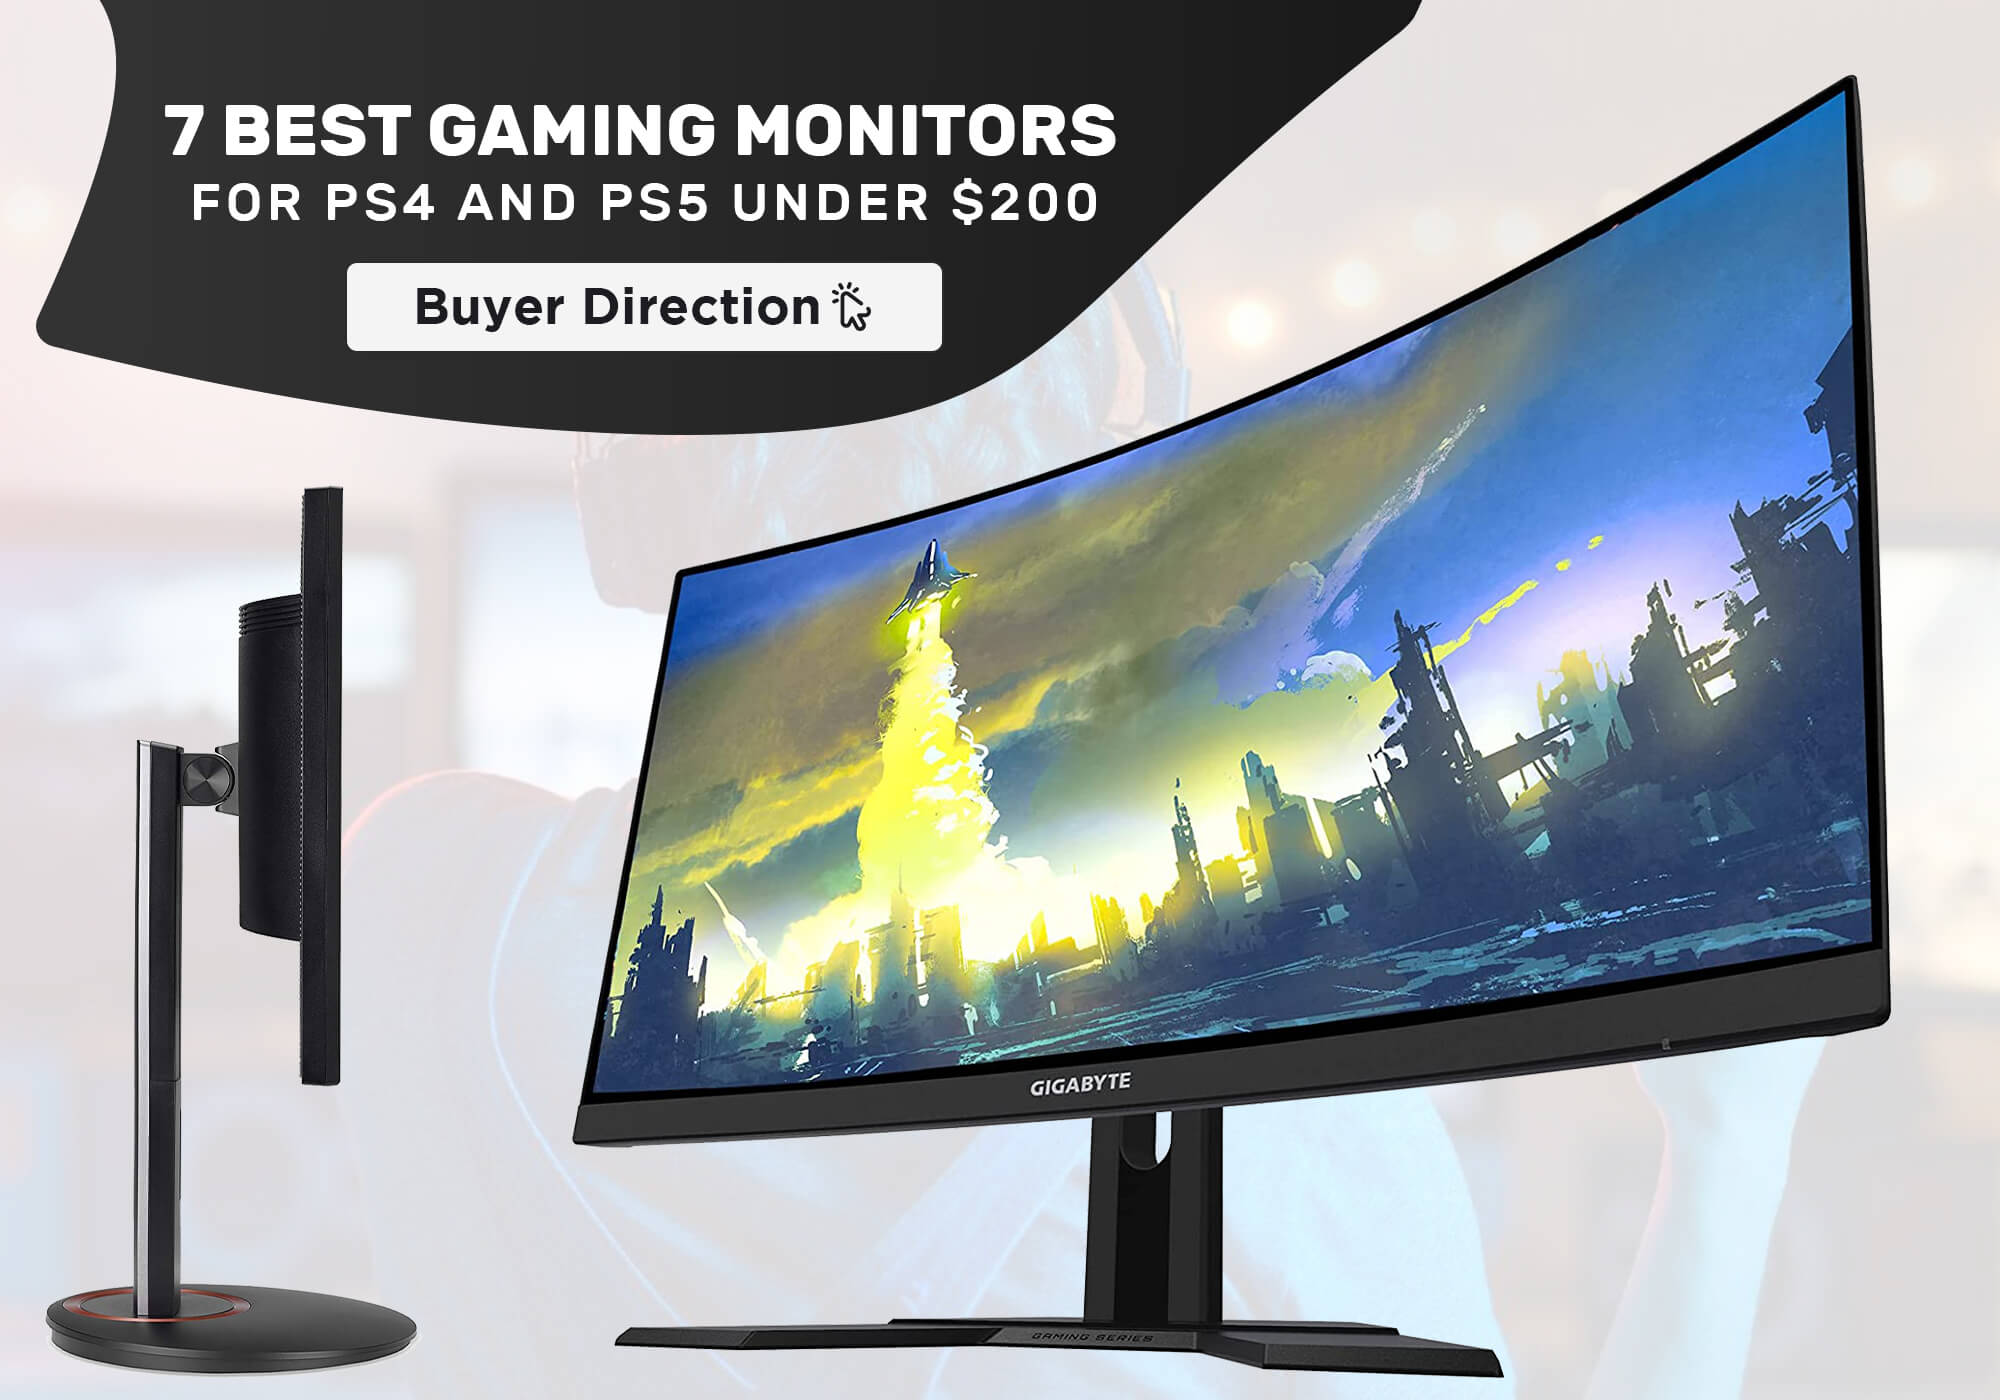 7 Best Gaming Monitors for PS4 and PS5 under $200 in 2021